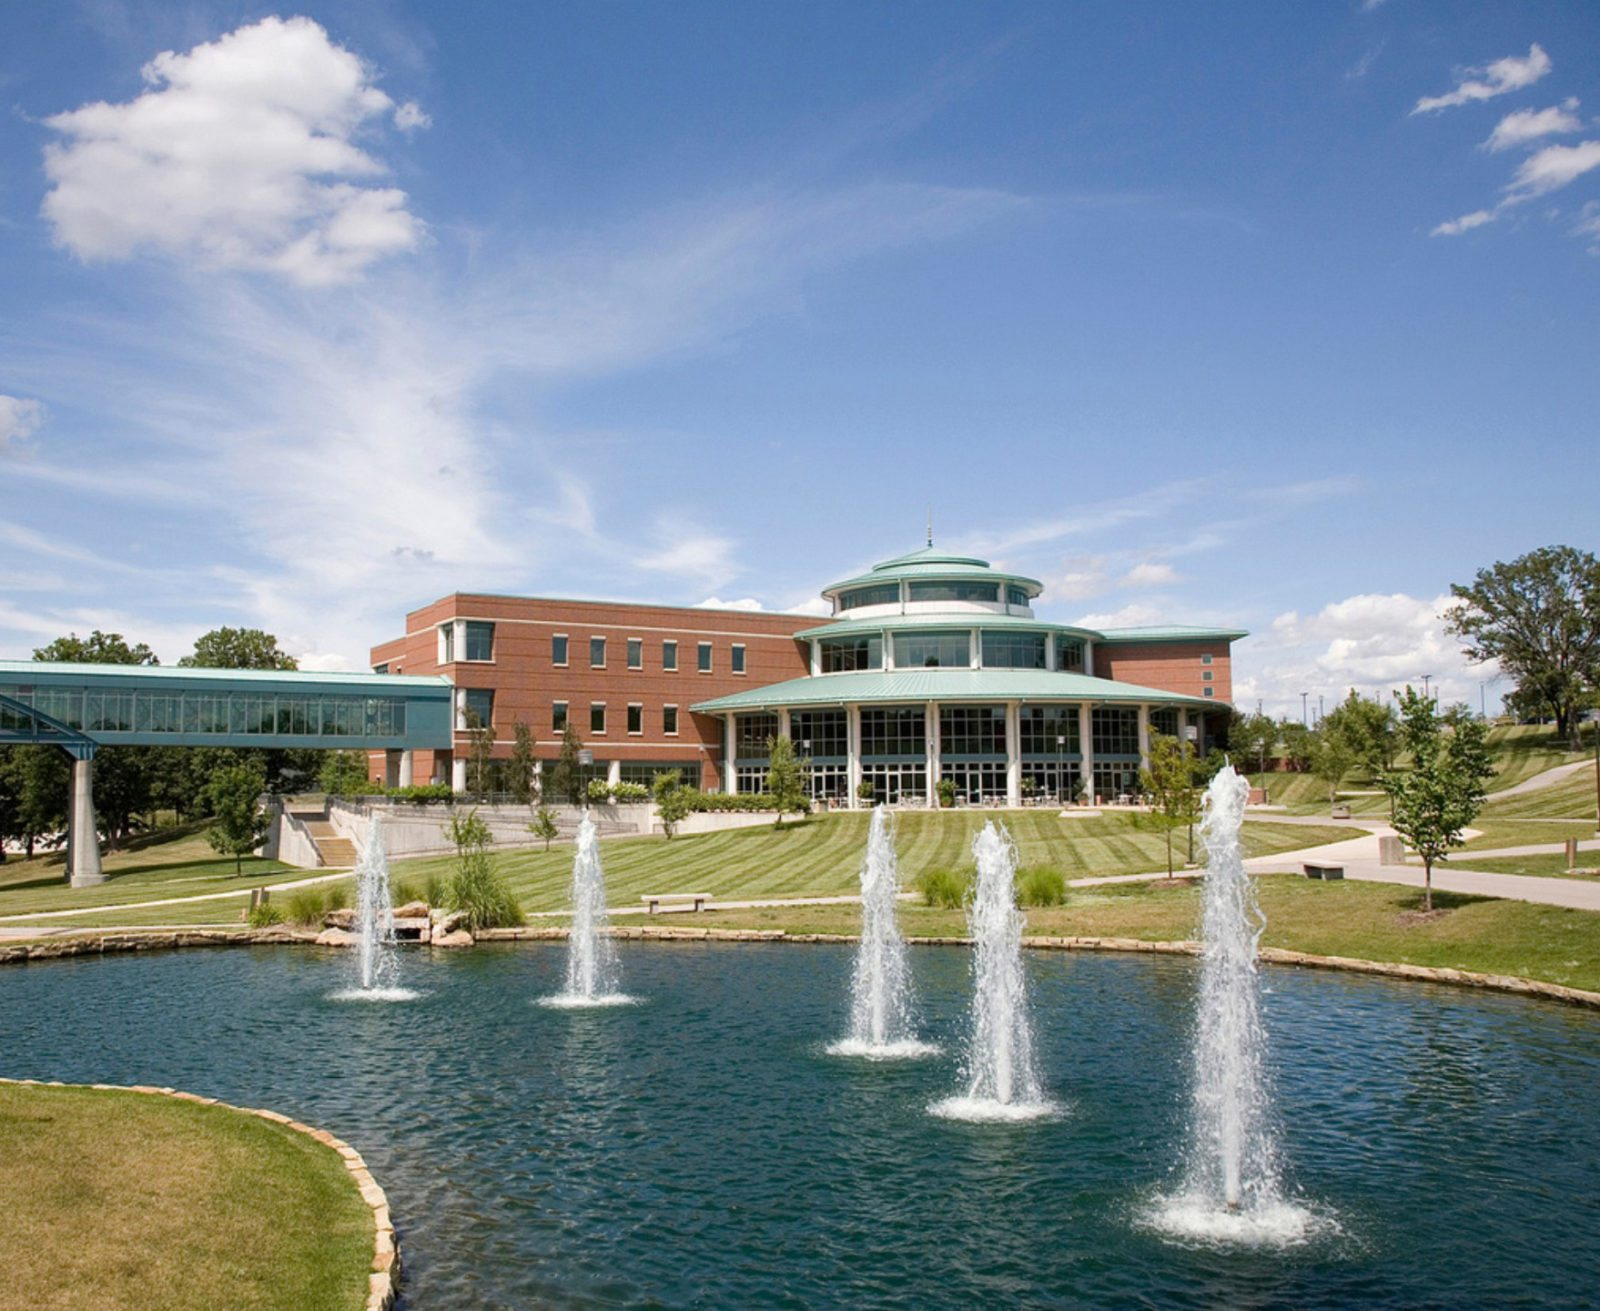 University of Missouri - St. Louis - Millennium Student Center